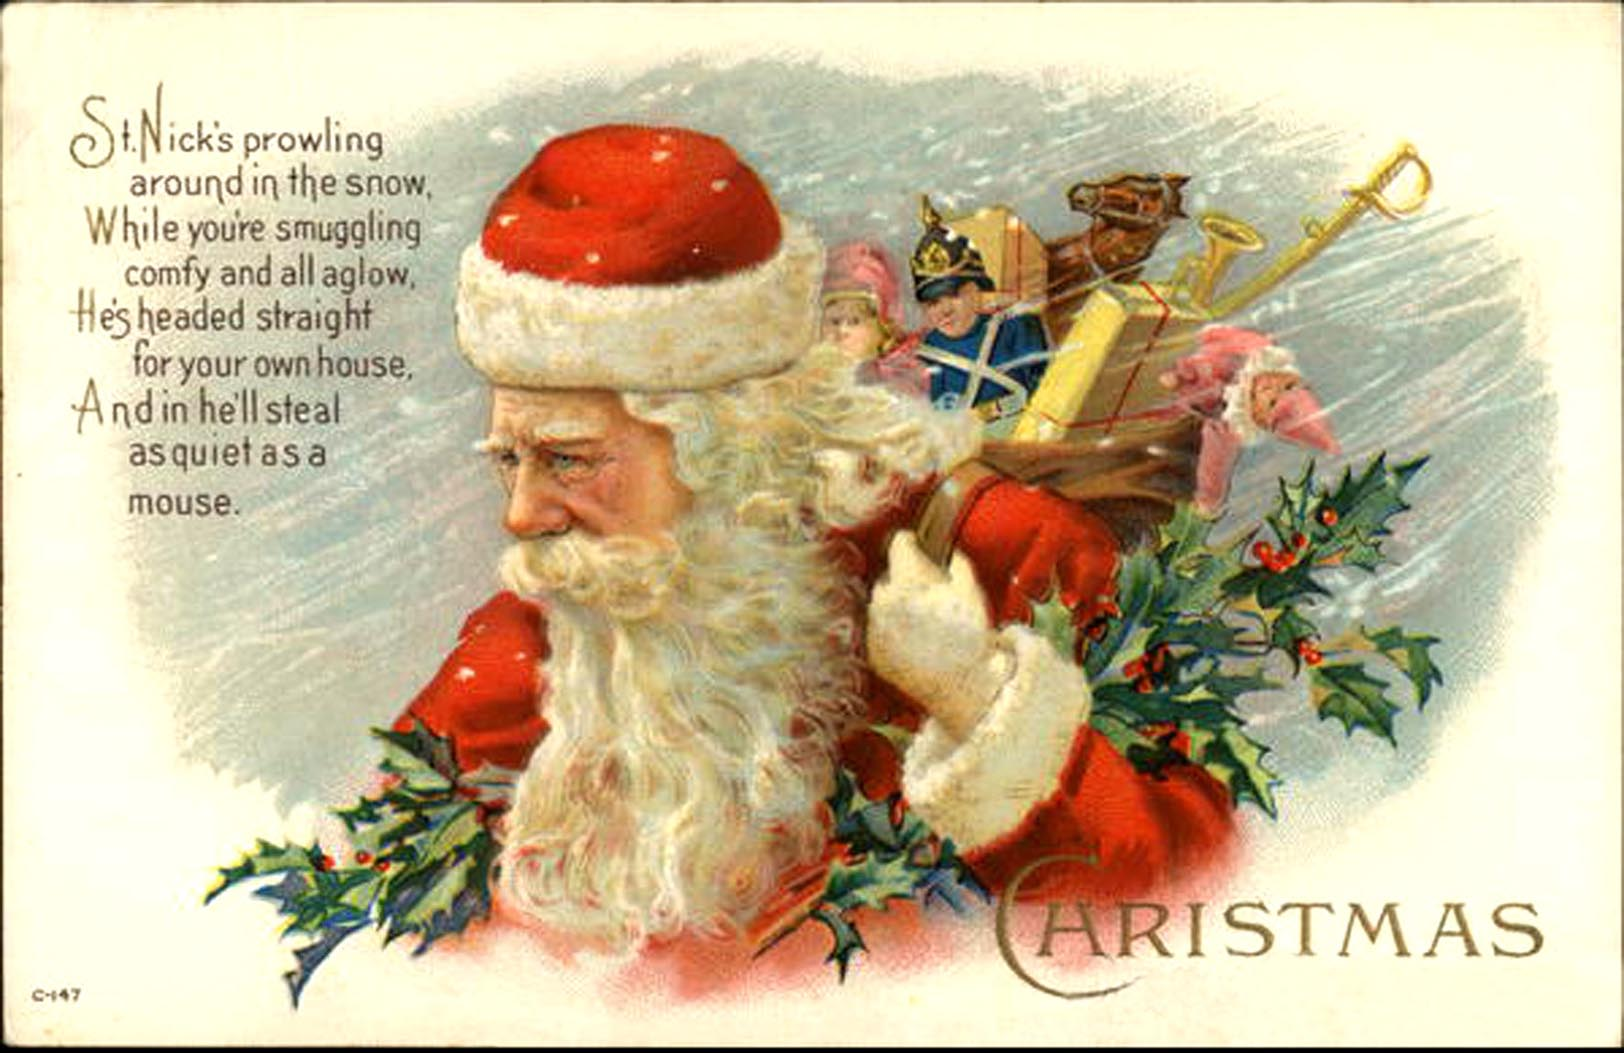 Vintage postcard (and poem) of St Nick (Santa Claus) striding through the snow with presents